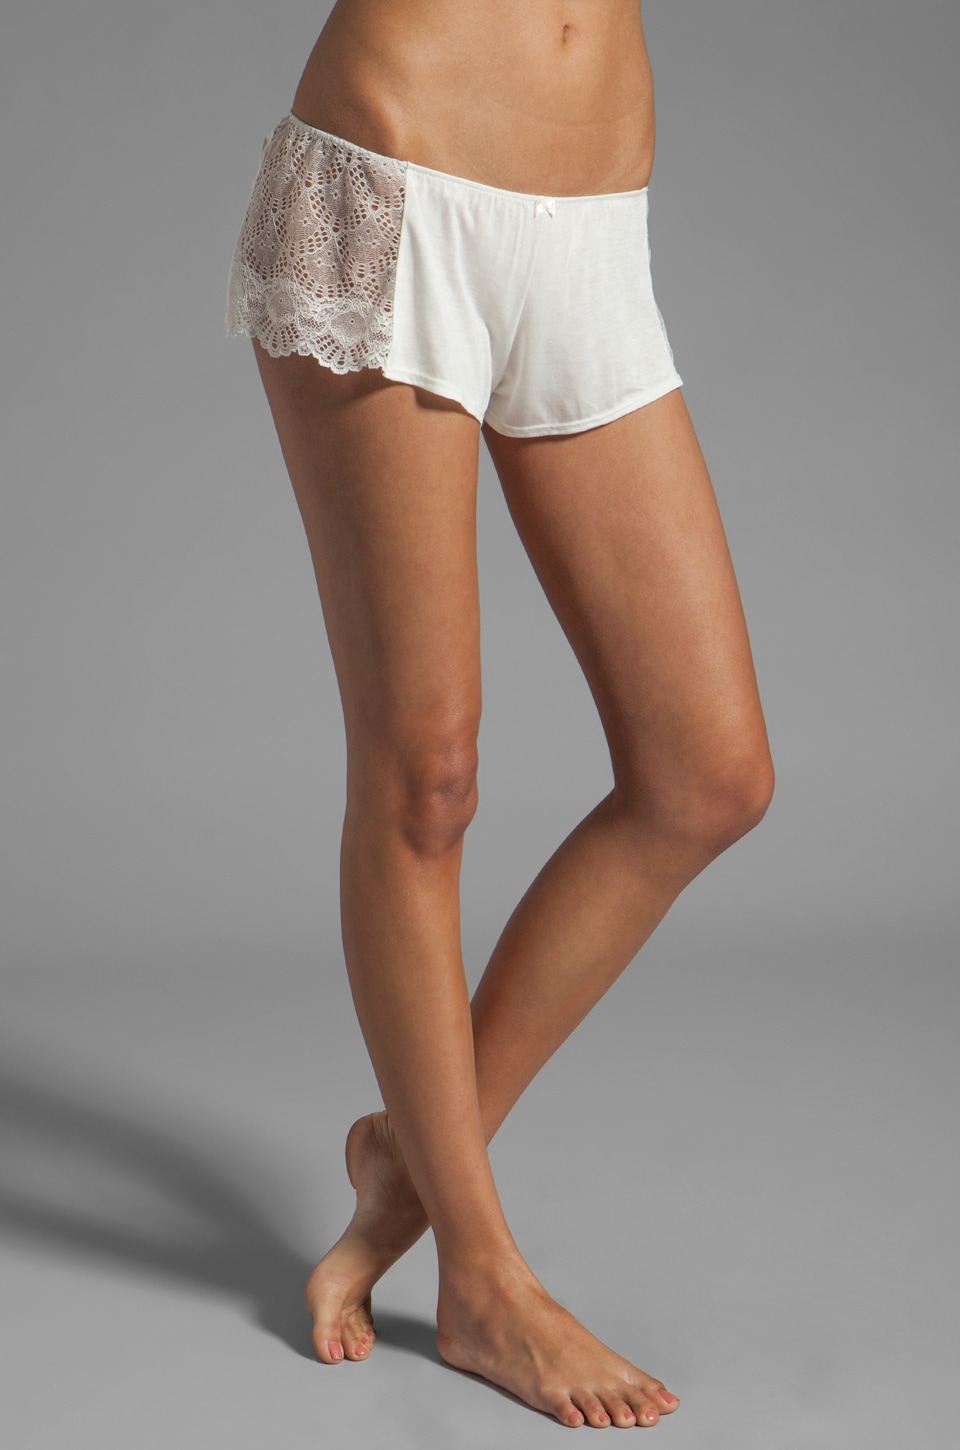 Only Hearts Venice Hipster with Lace Inserts in Antique White